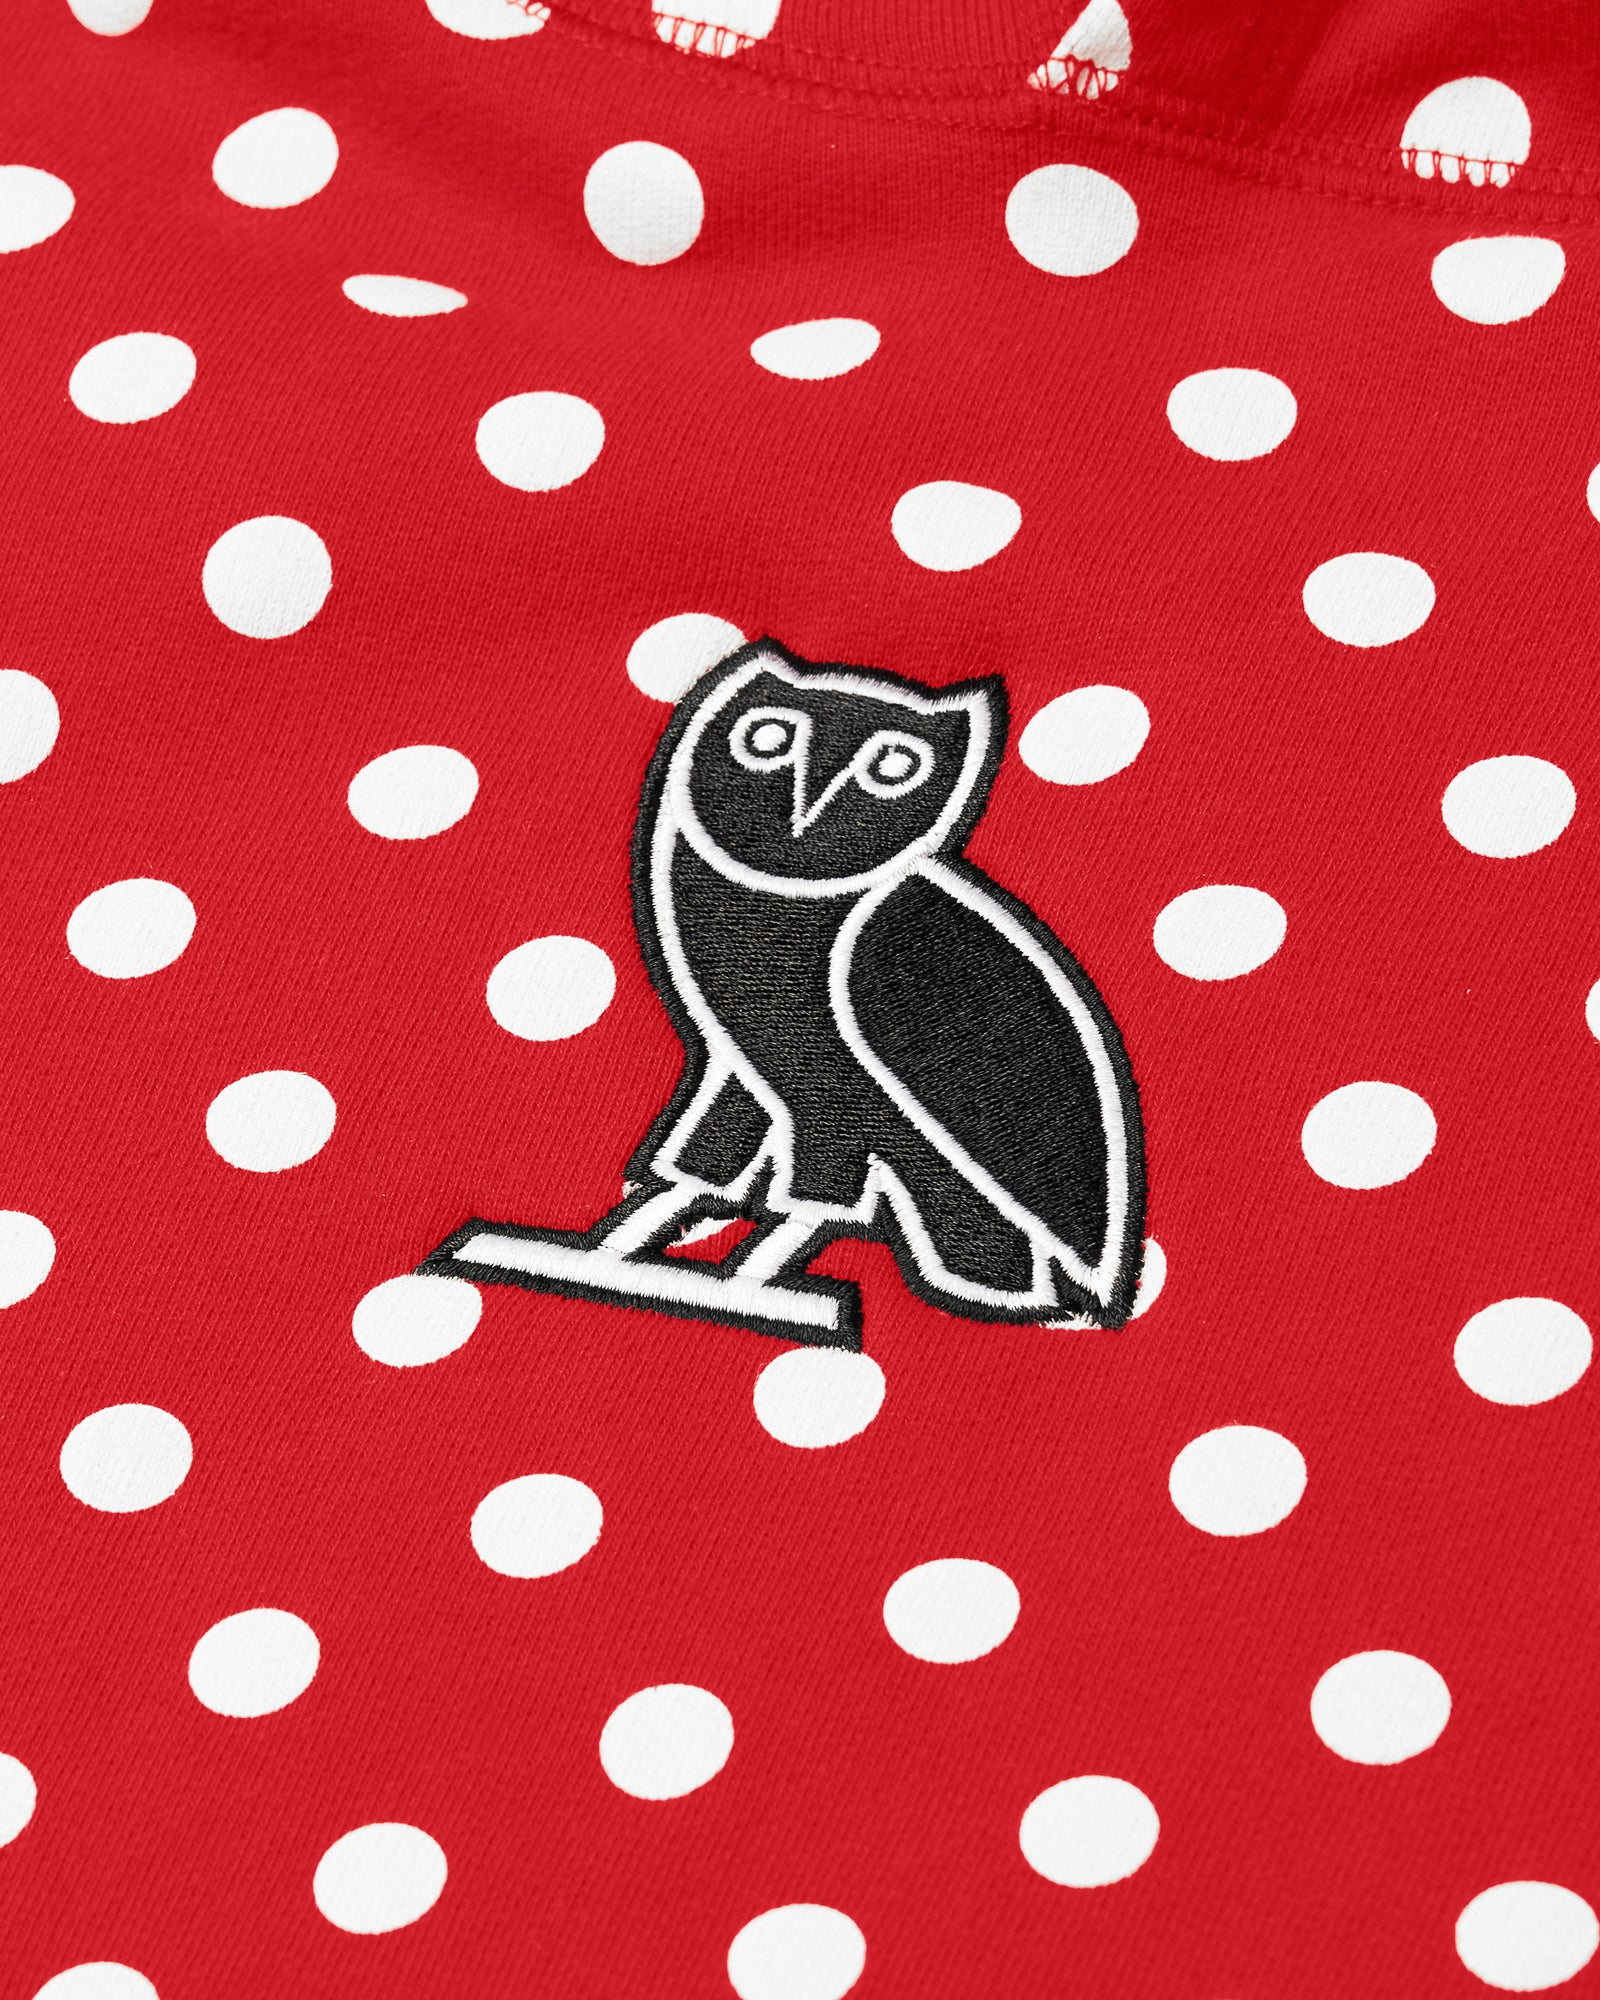 CLASSIC OWL HOODIE - RED POLKA DOT IMAGE #2